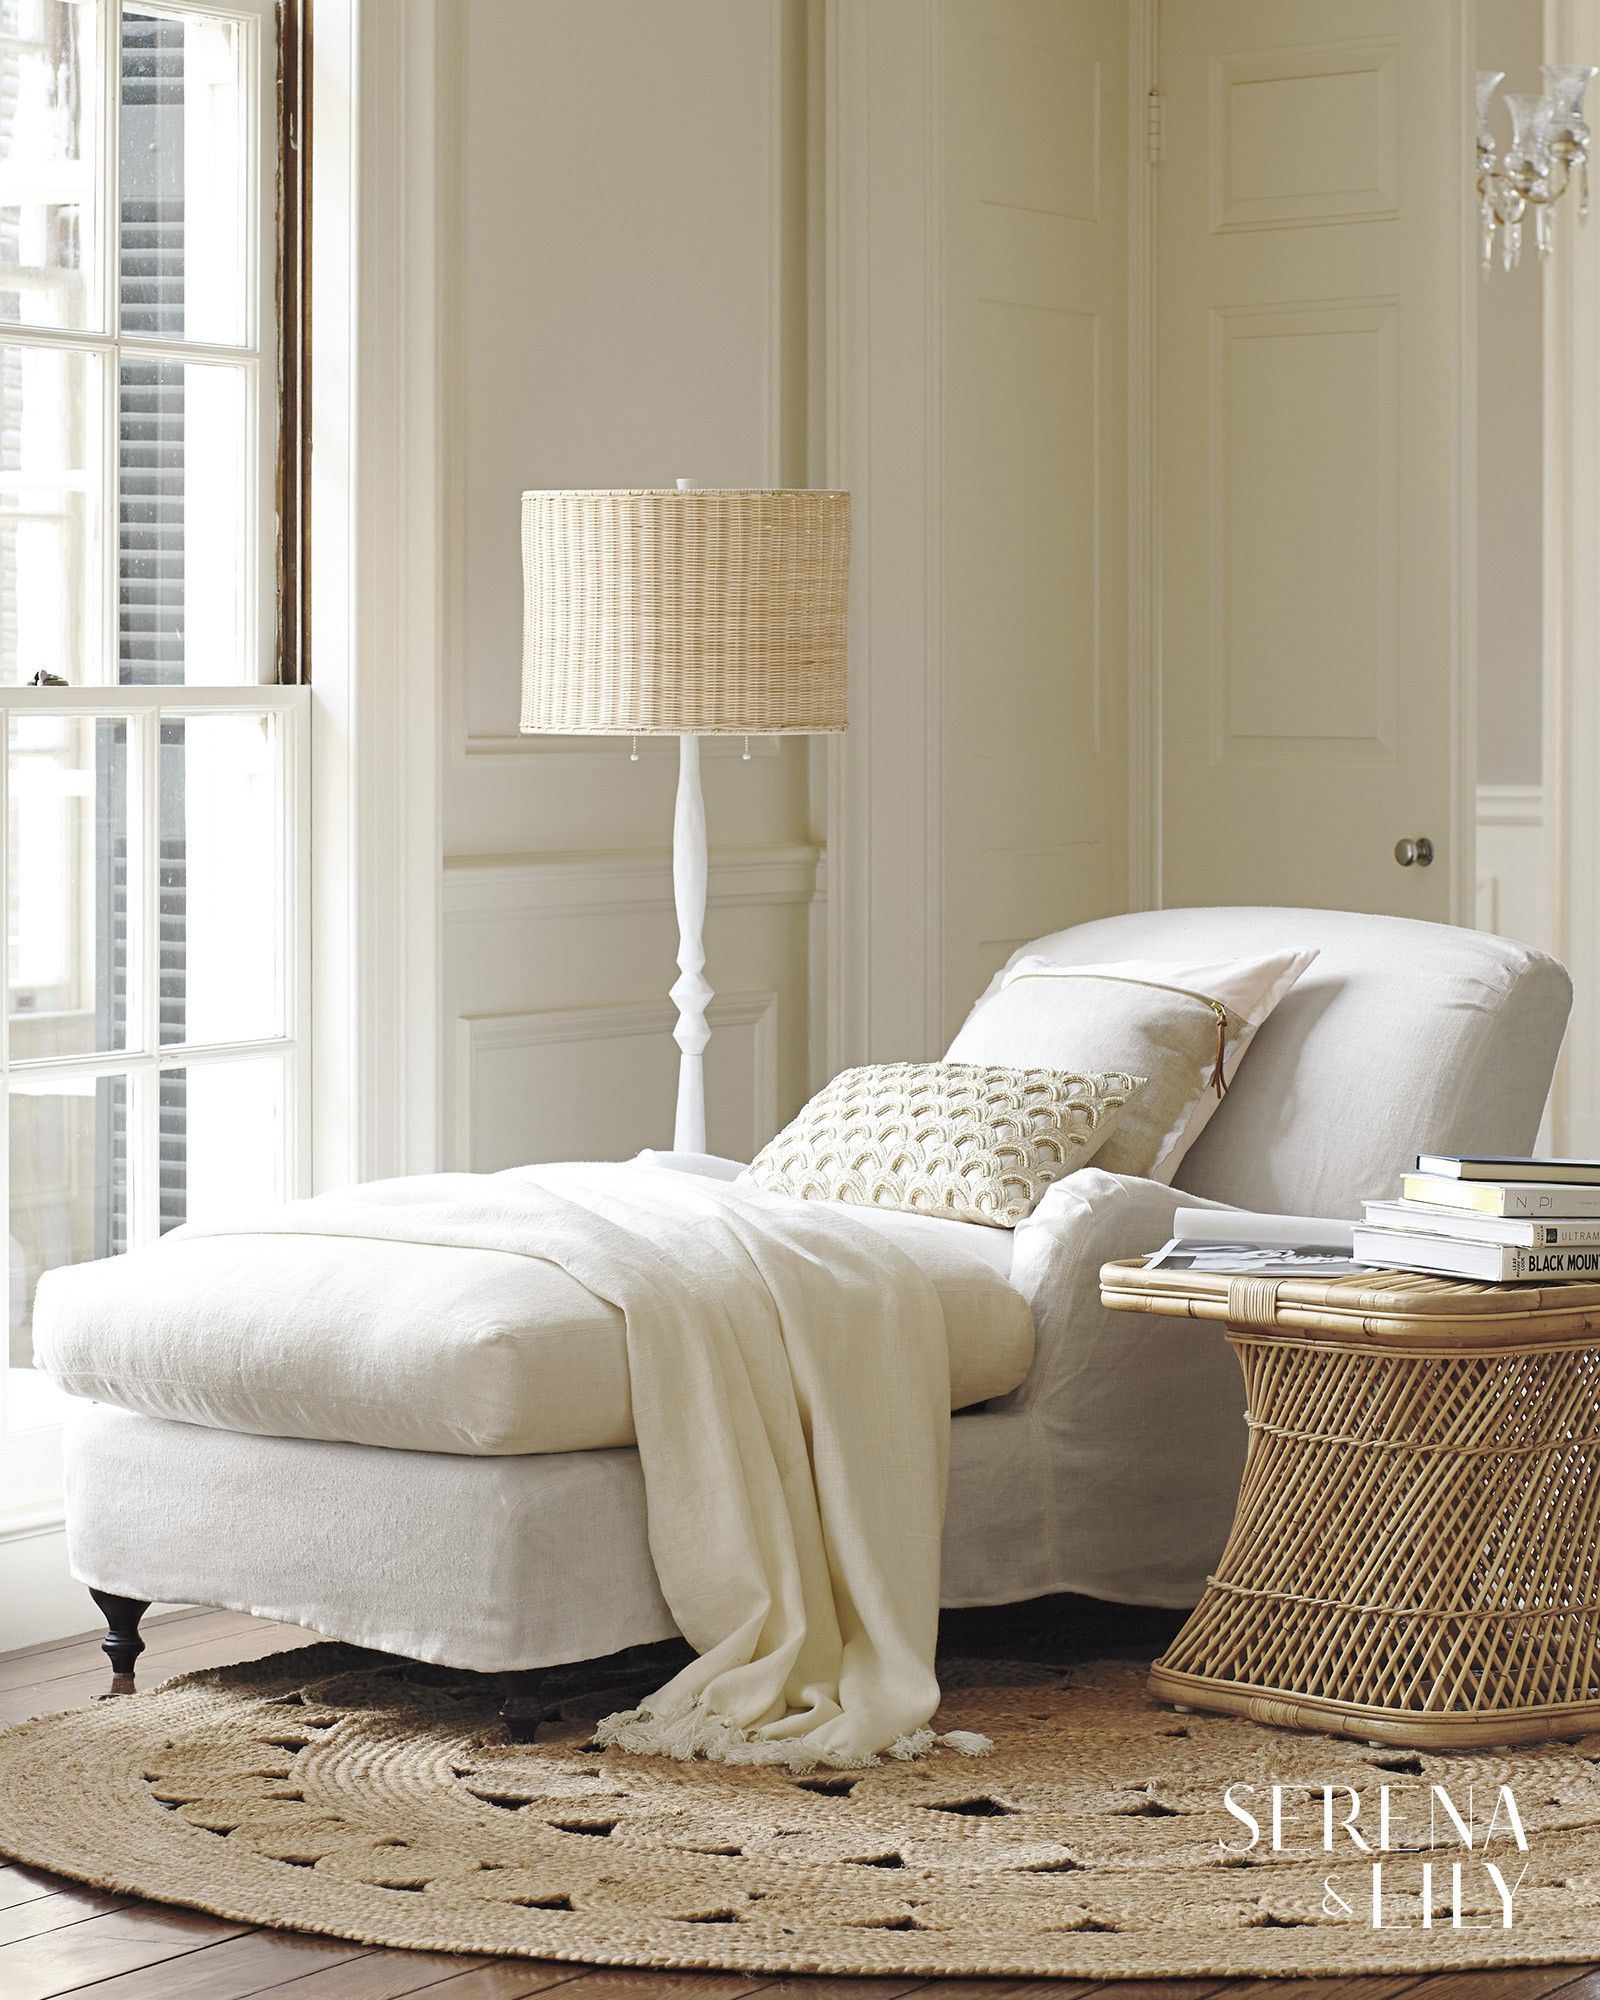 Handwoven In India From Pure Jute And Inspired By Scandinavian